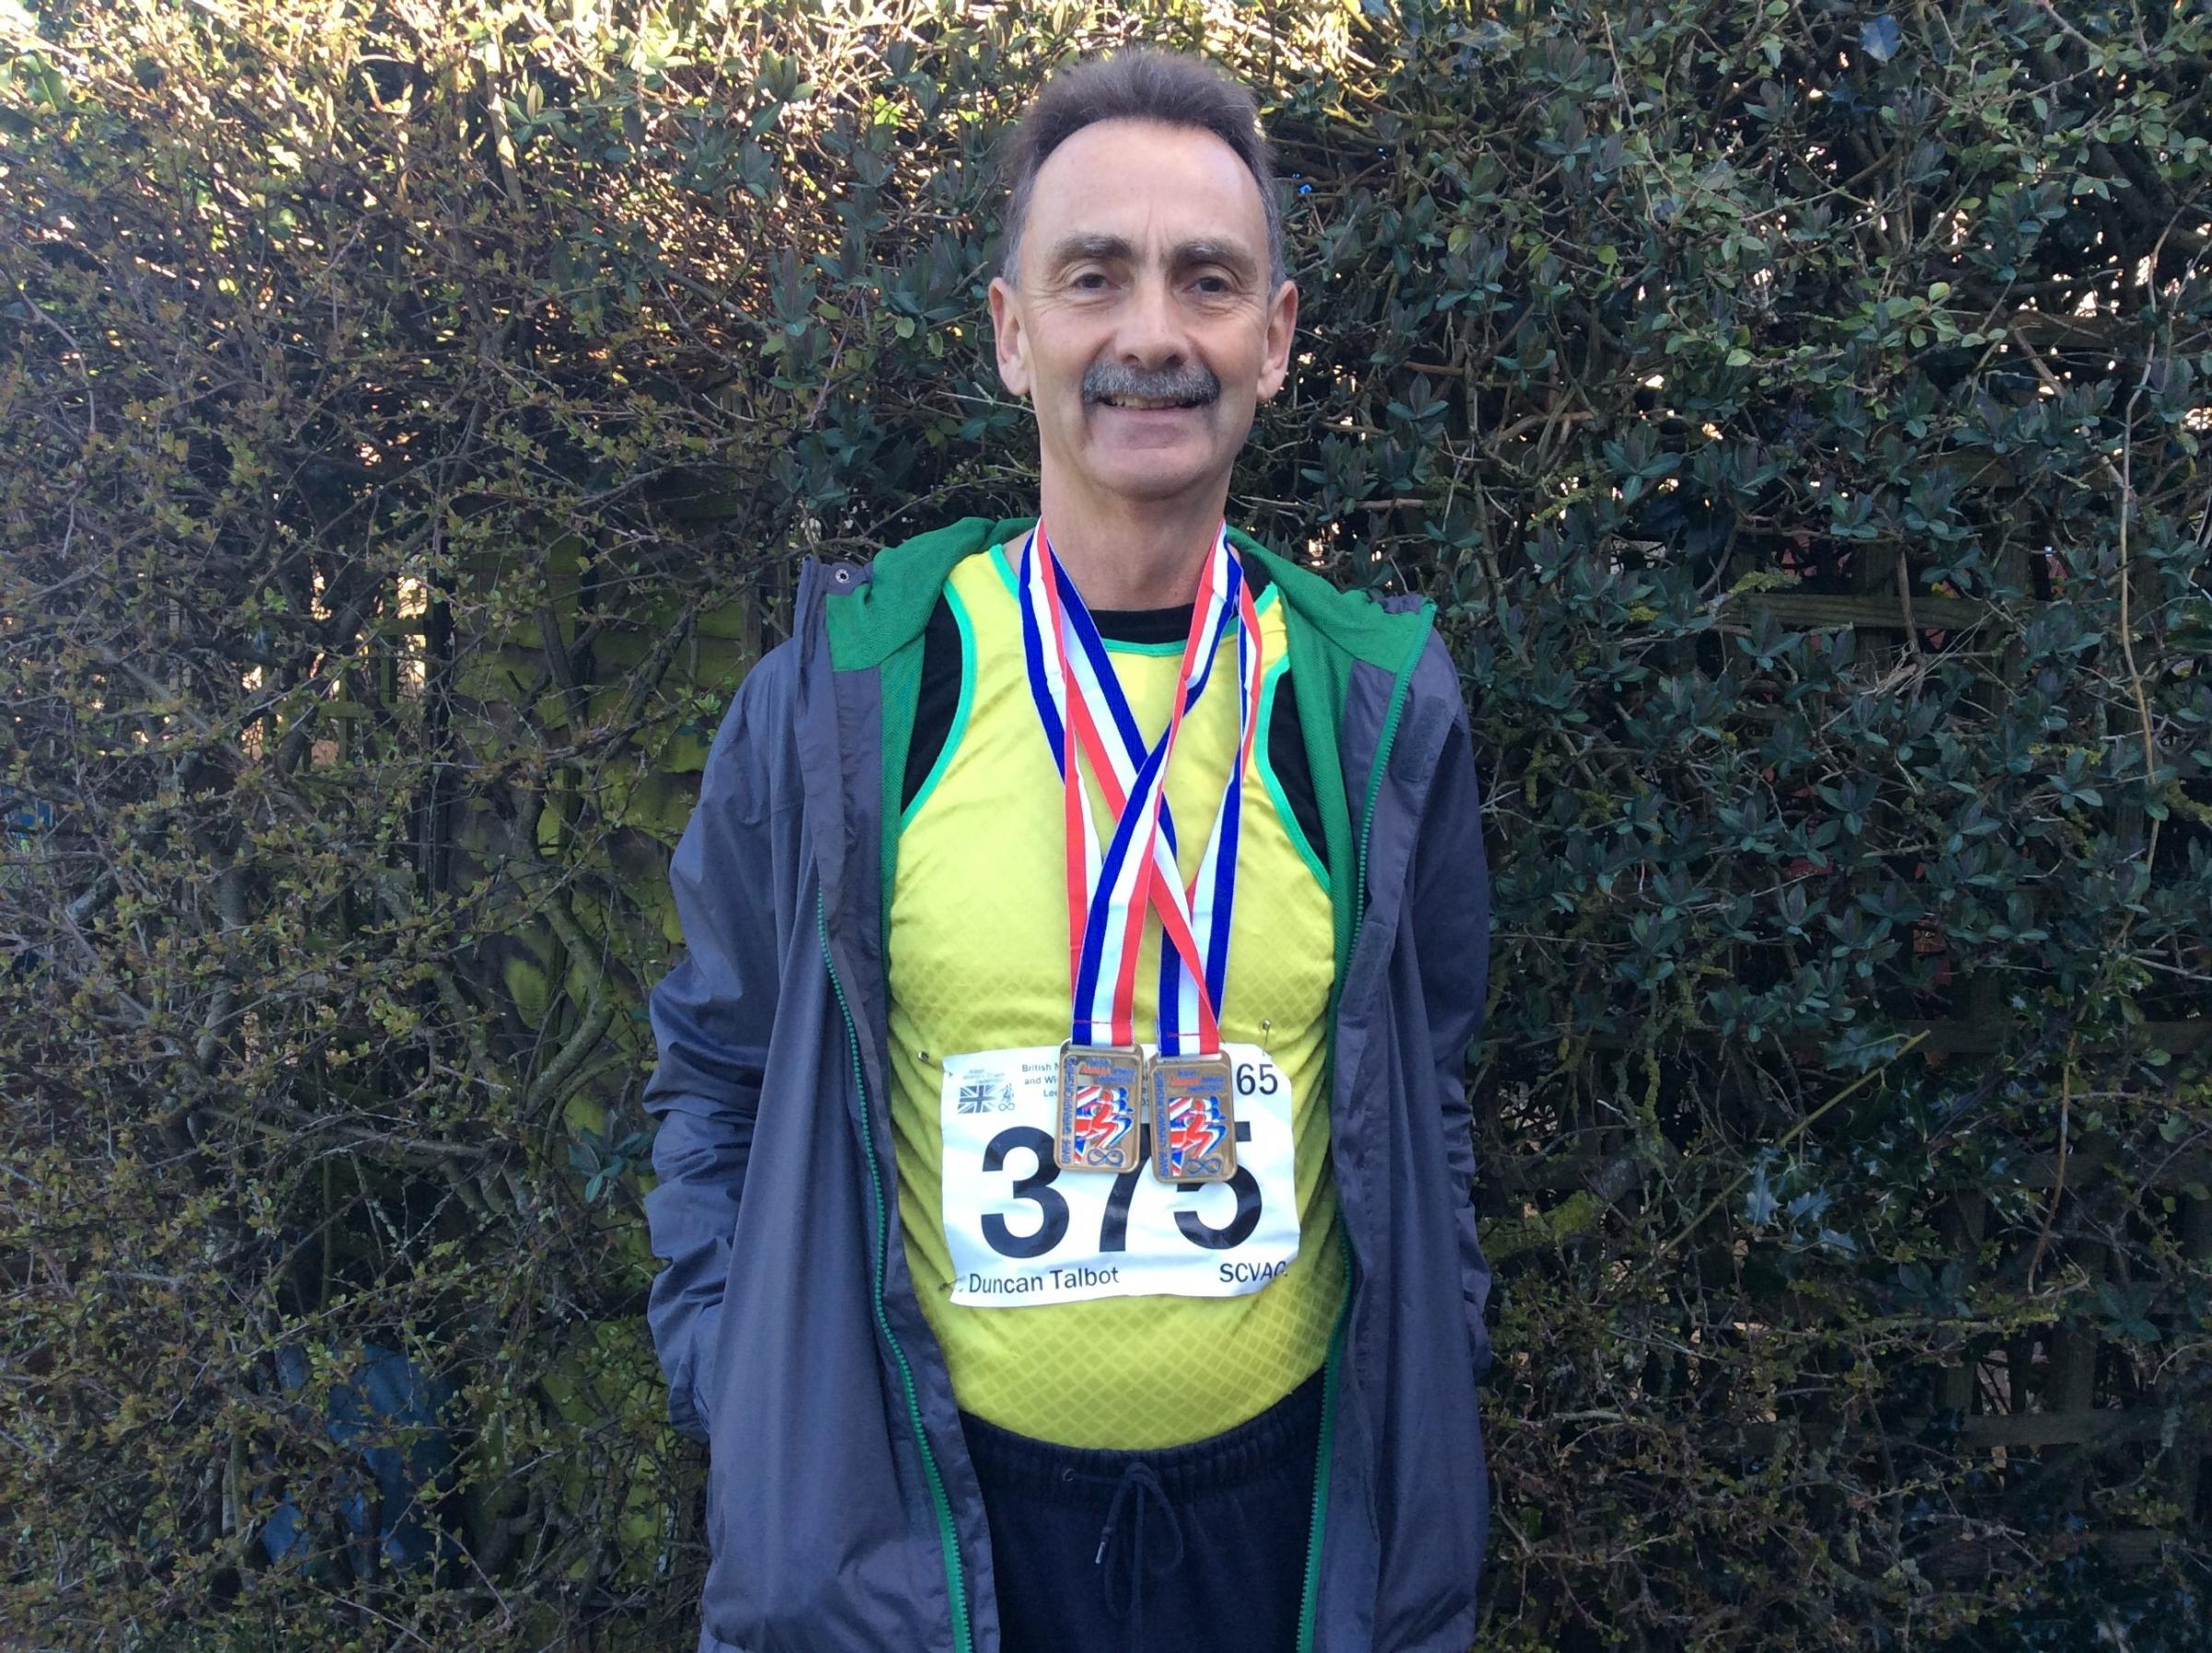 Duncan Talbot with his medals at Lee Valley